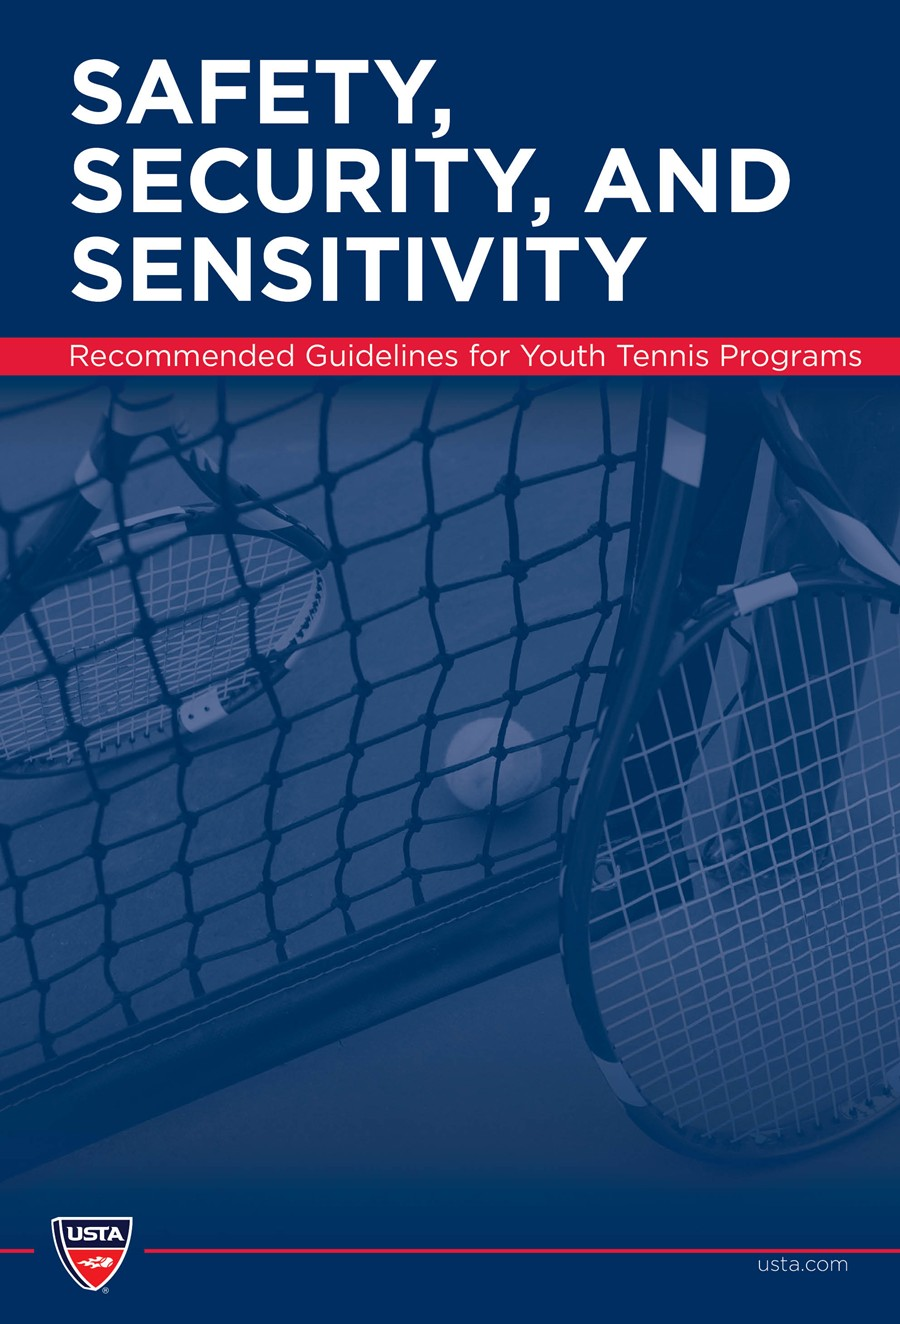 USTA_2012_Safety,_Security_and_Sensitivity_handbook